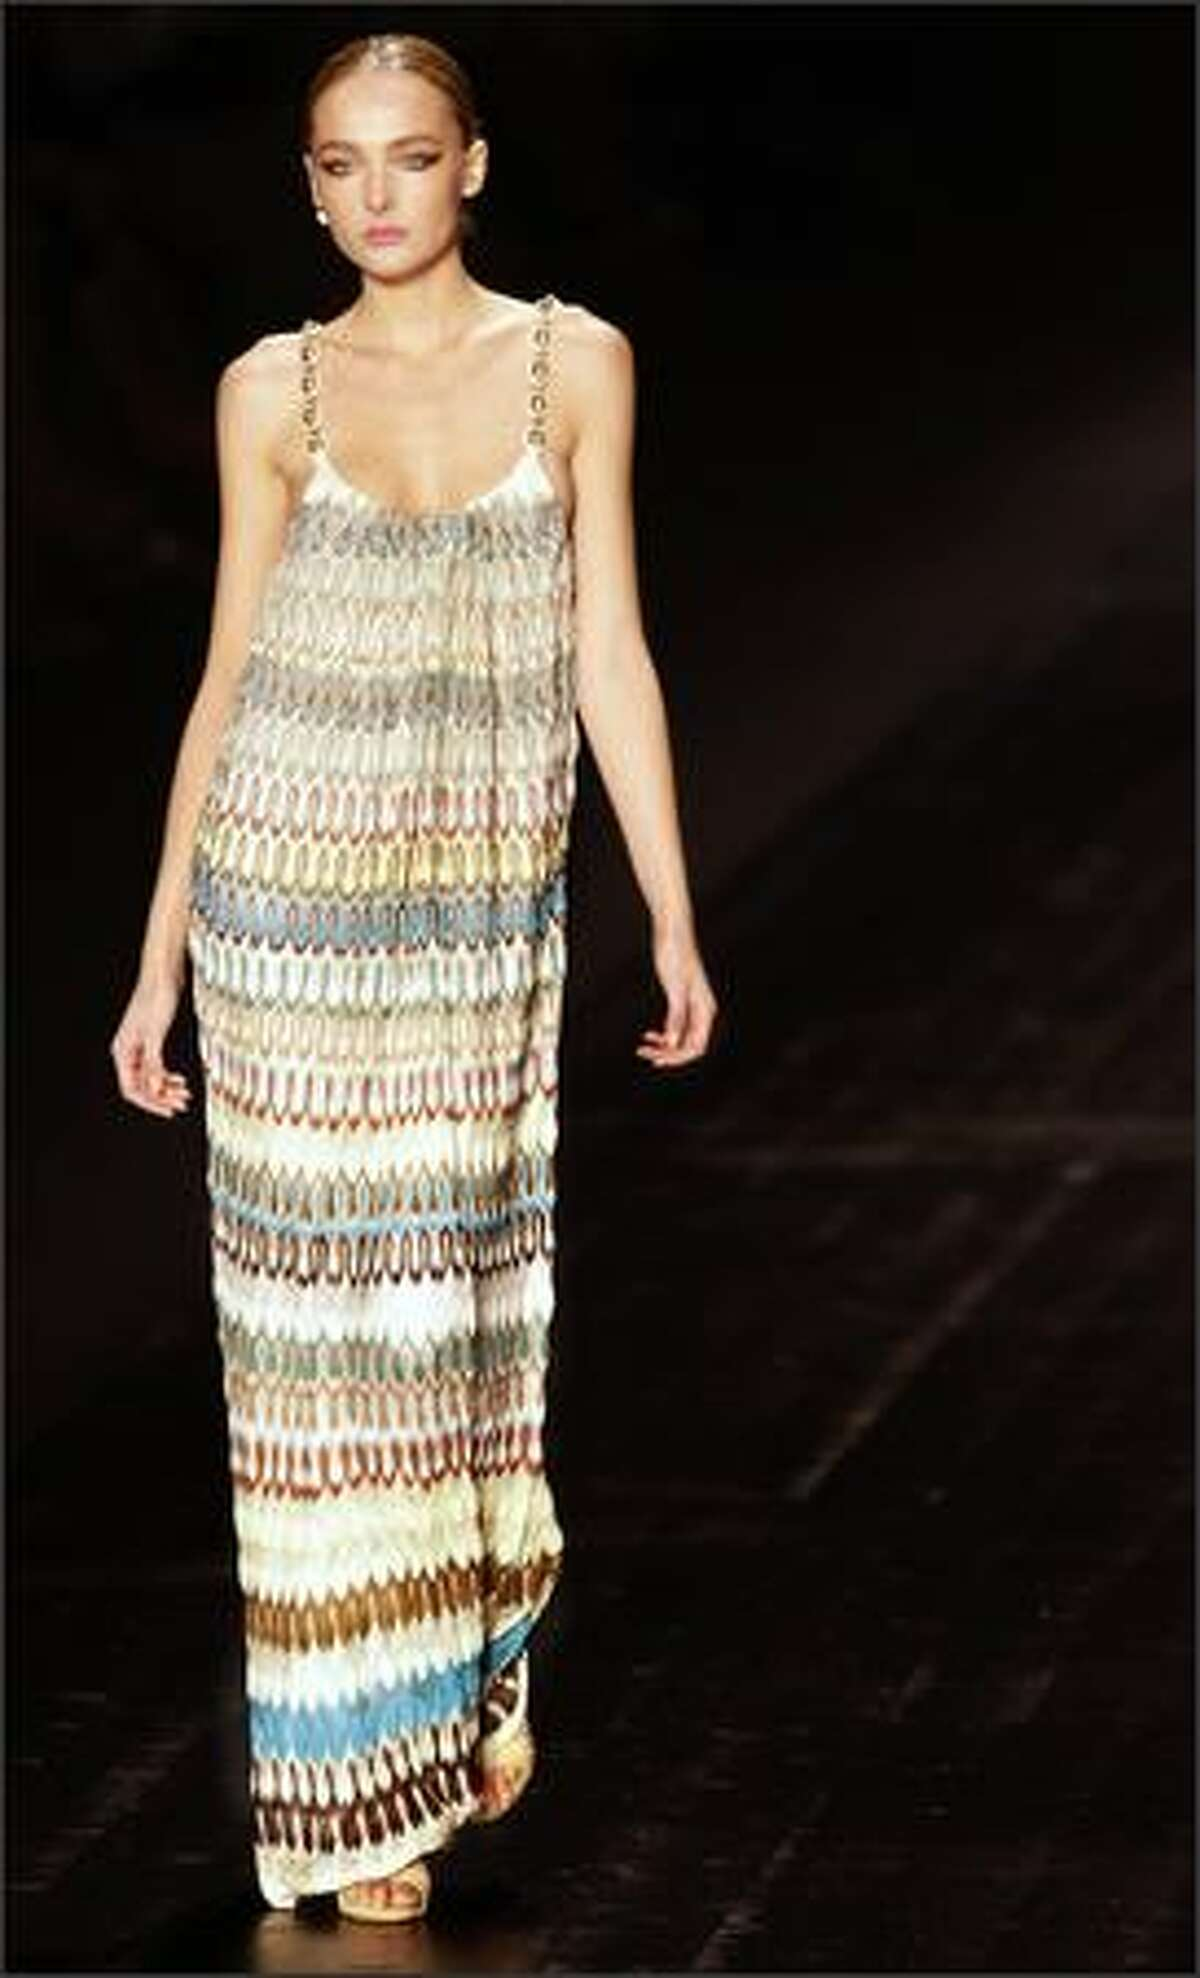 A model presents a creation by Italian designer Angela Missoni.